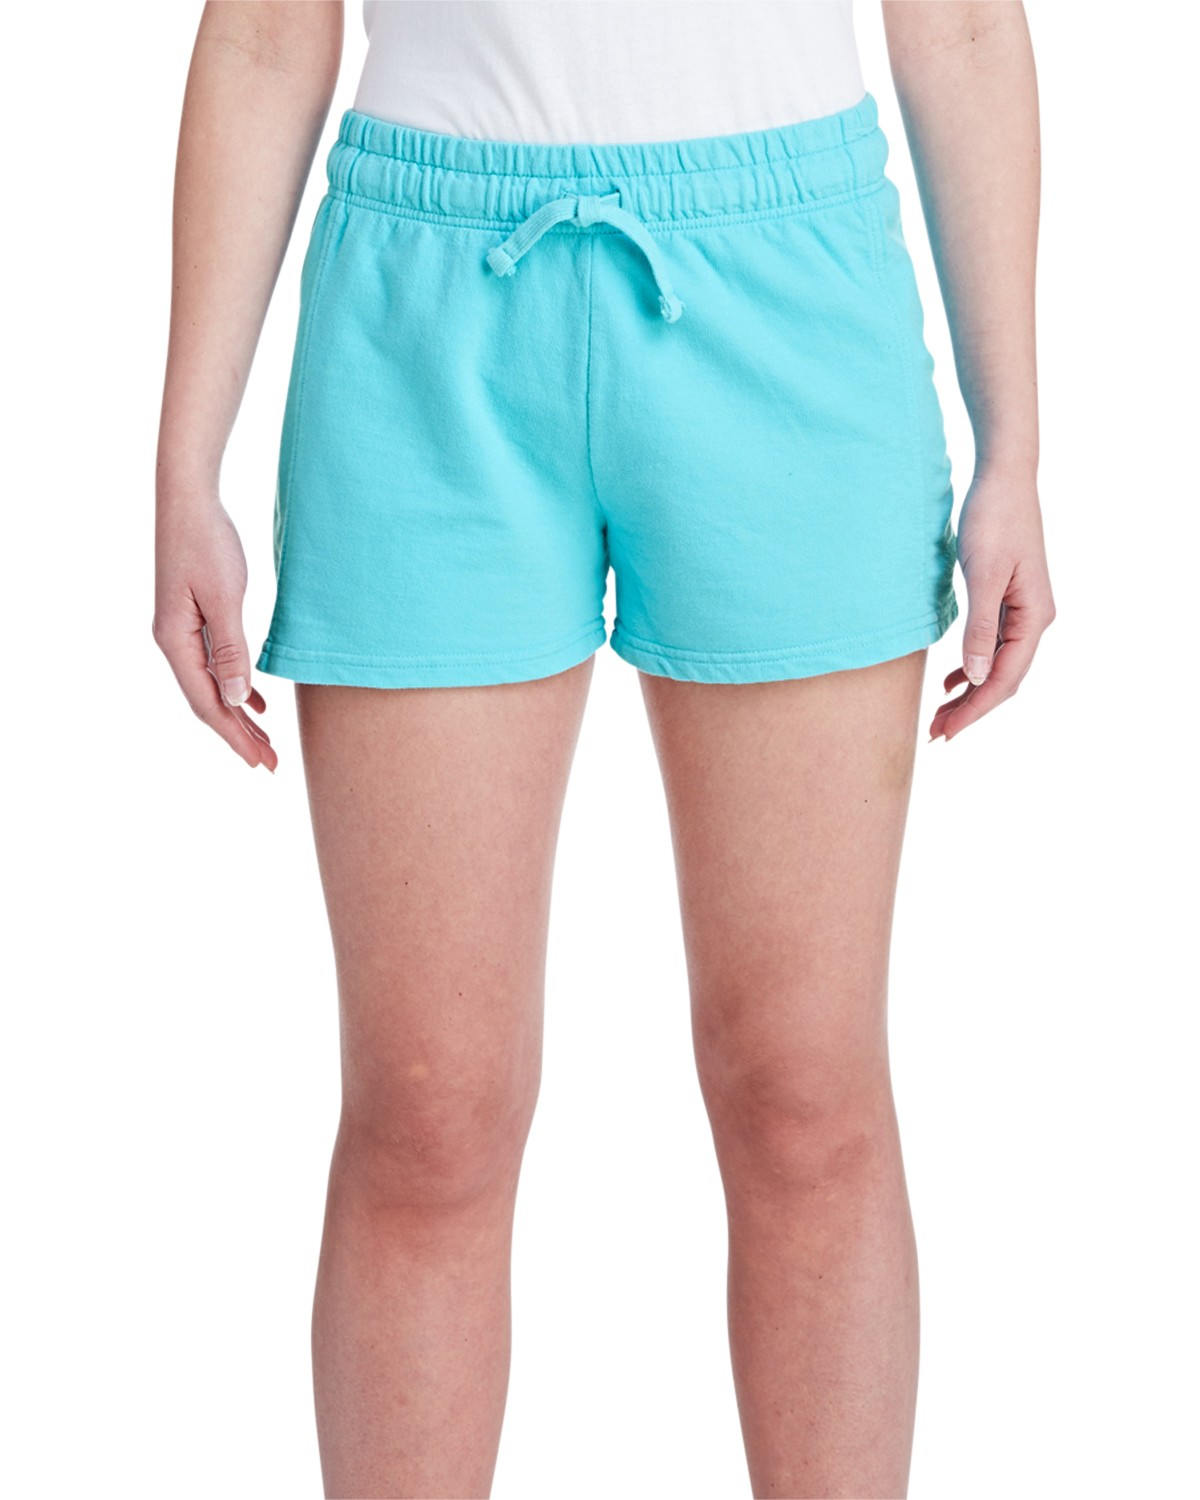 1537L Comfort Colors LAGOON BLUE